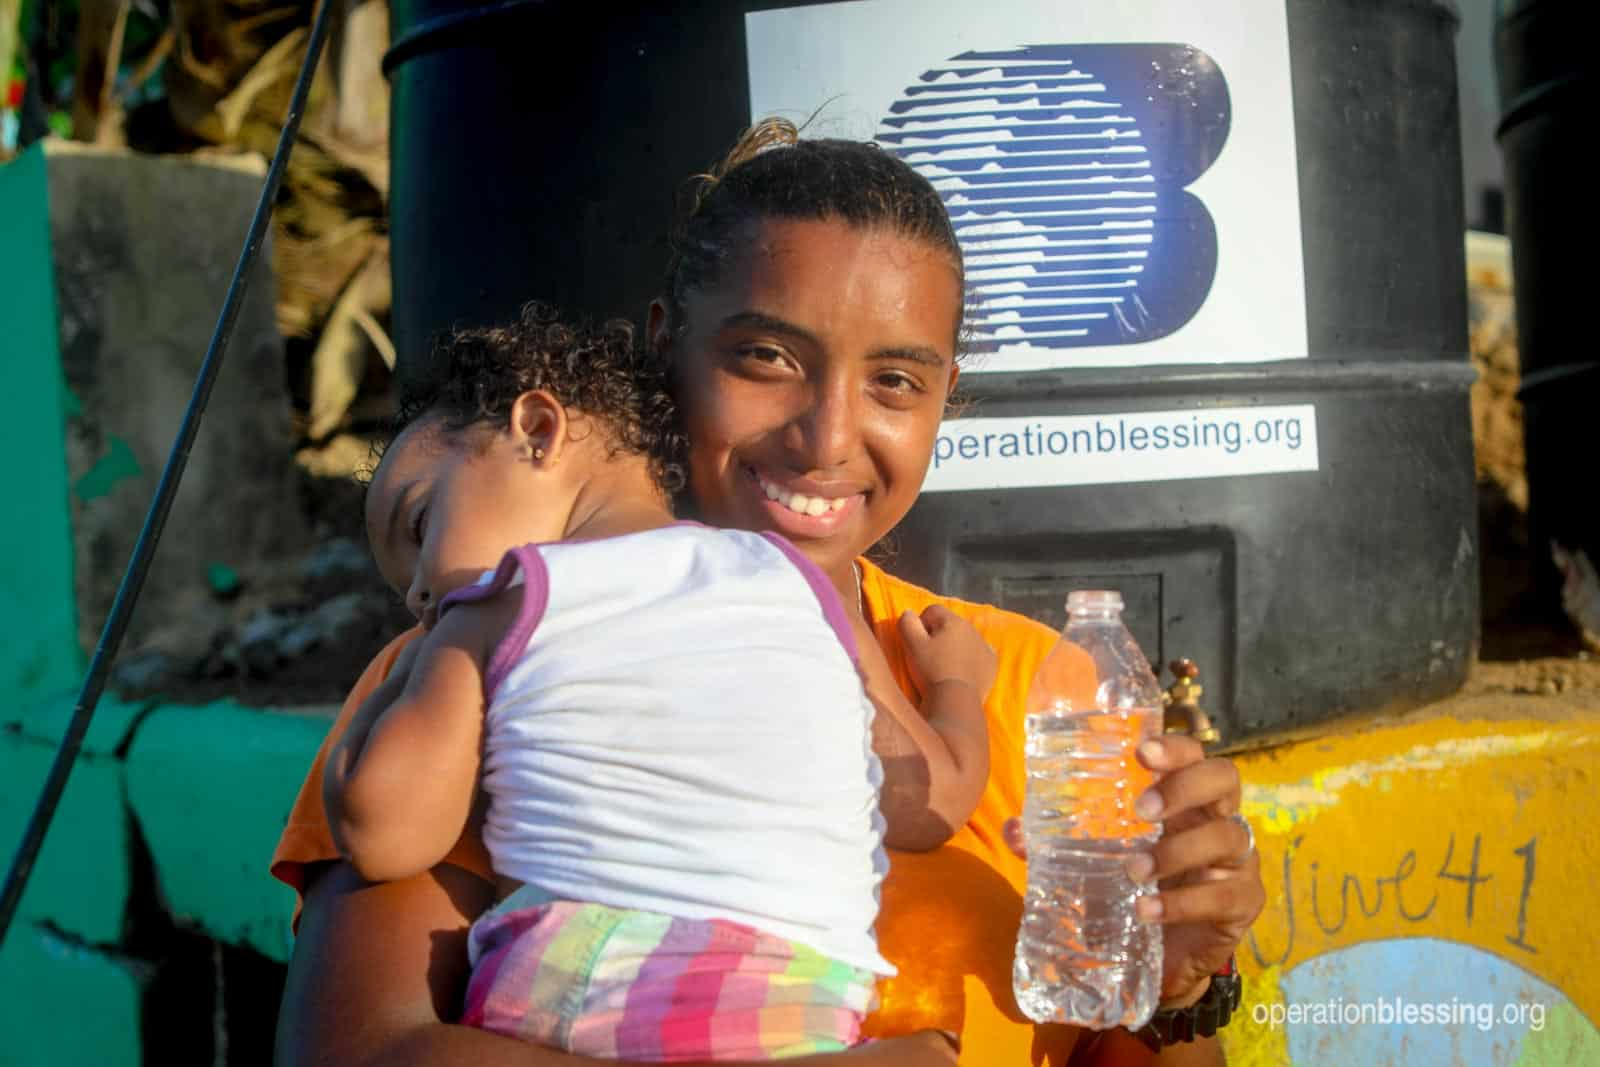 A woman stands with her child and a bottle of safe drinking water.